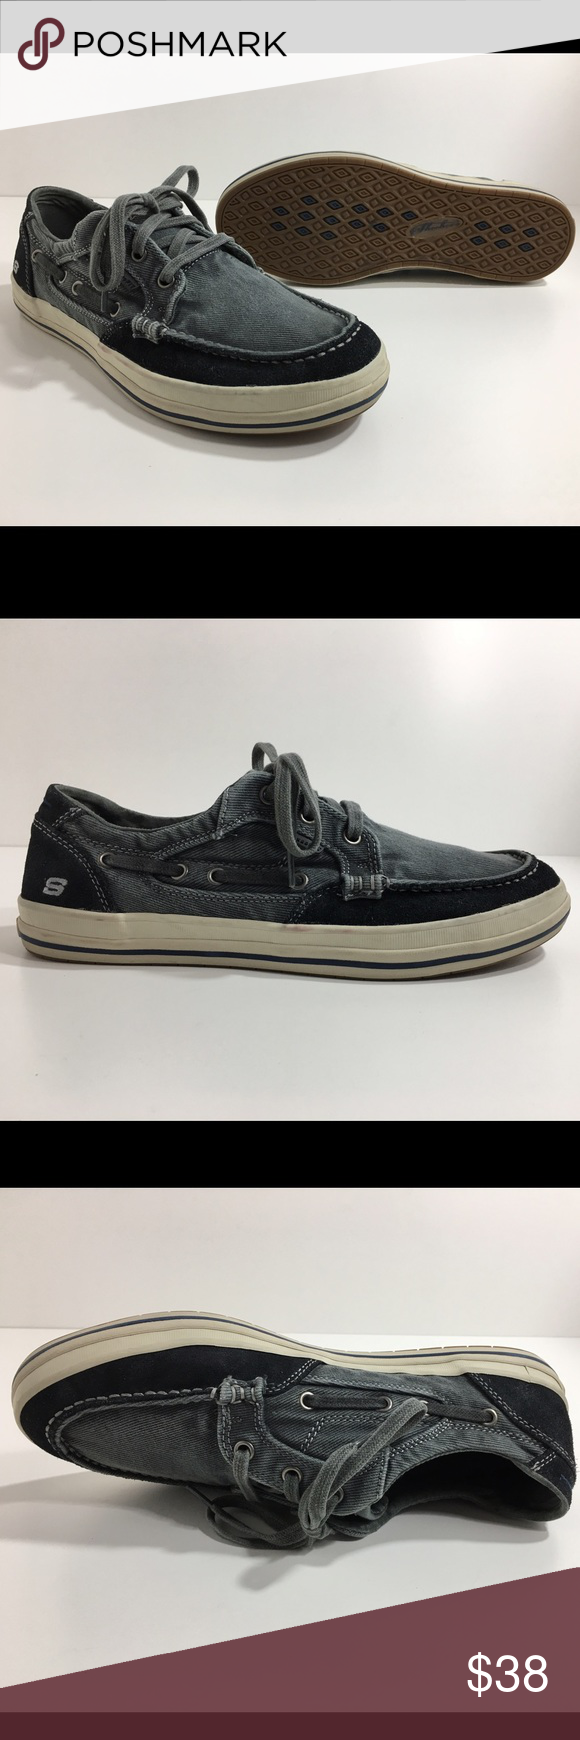 5a20b3ce1232 Skechers Diamond Back Leroy Canvas Boat Shoe Men s Offering the most  sanitary pre-owned footwear